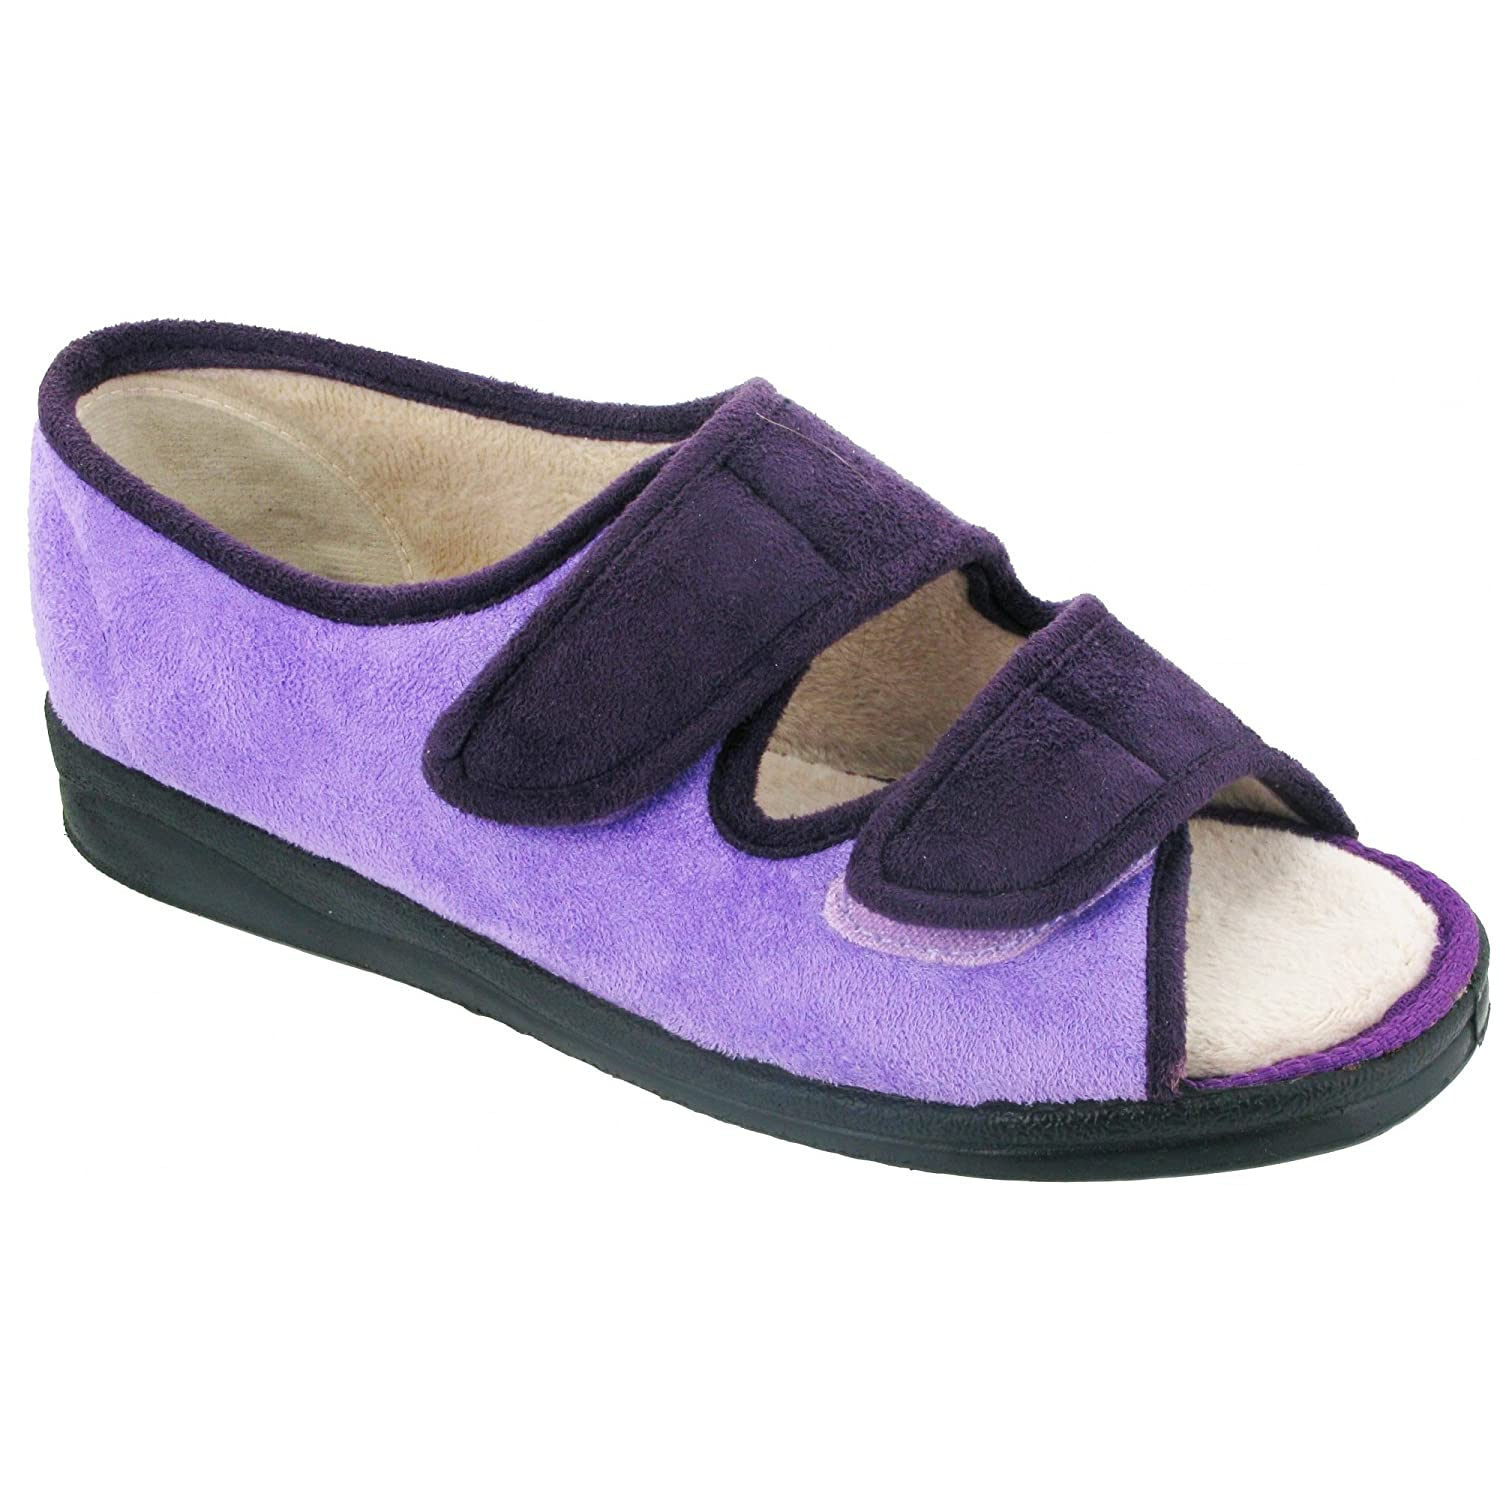 01feee1962aa Mirak Louise Touch Fastening Open Toe Slipper Ladies Slippers Size 3   Amazon.co.uk  Shoes   Bags